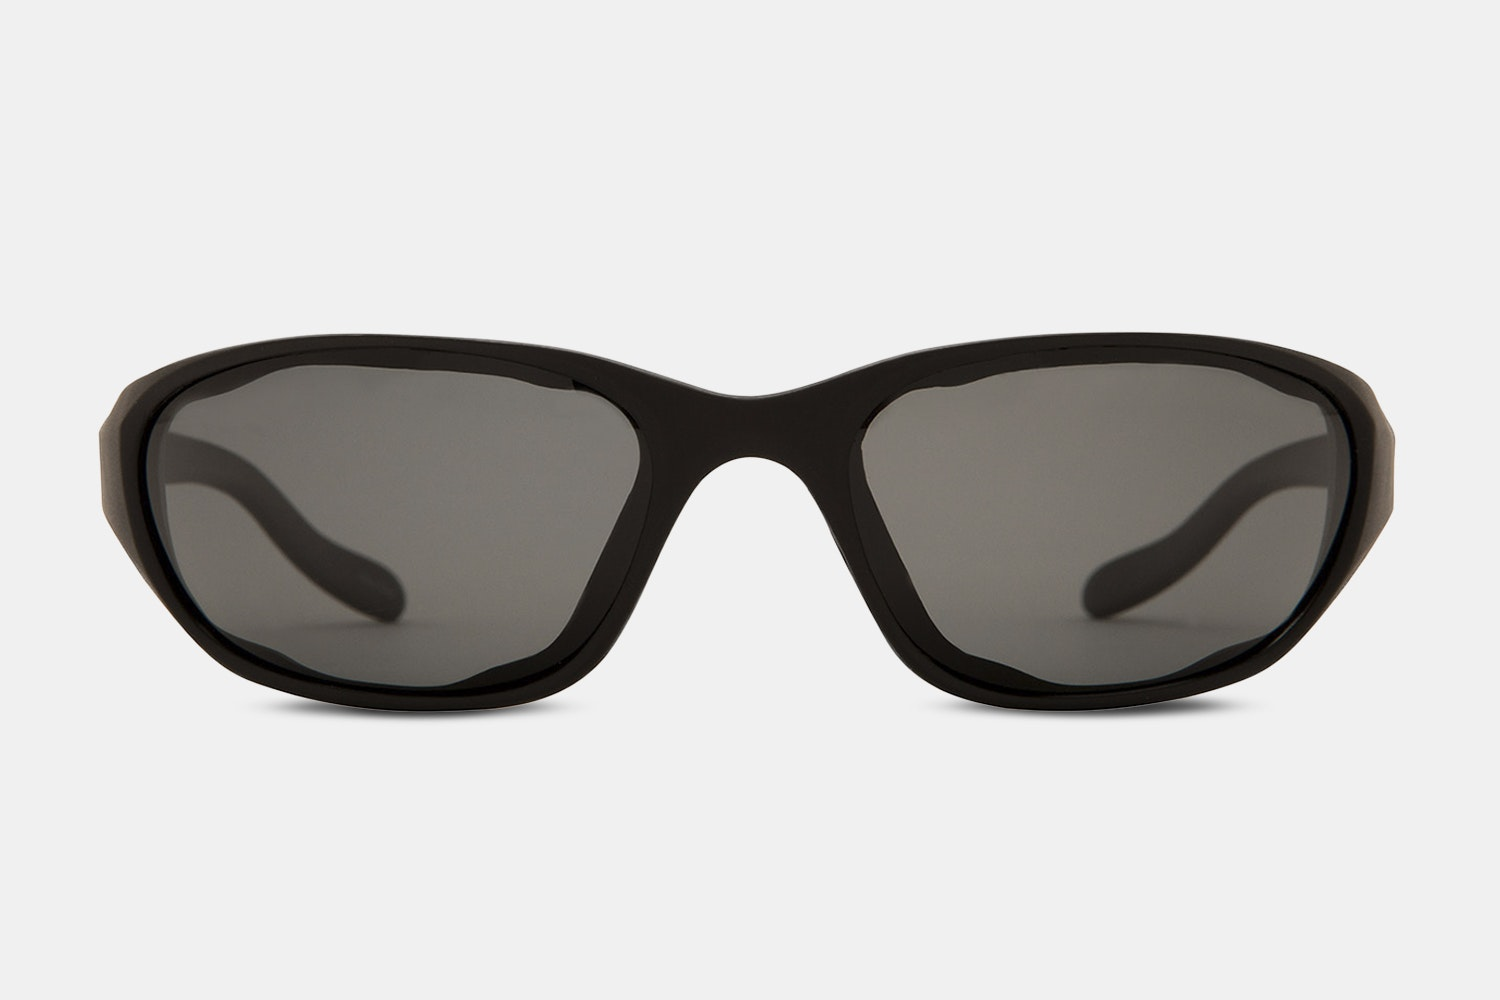 Matte Black with Gray Lens